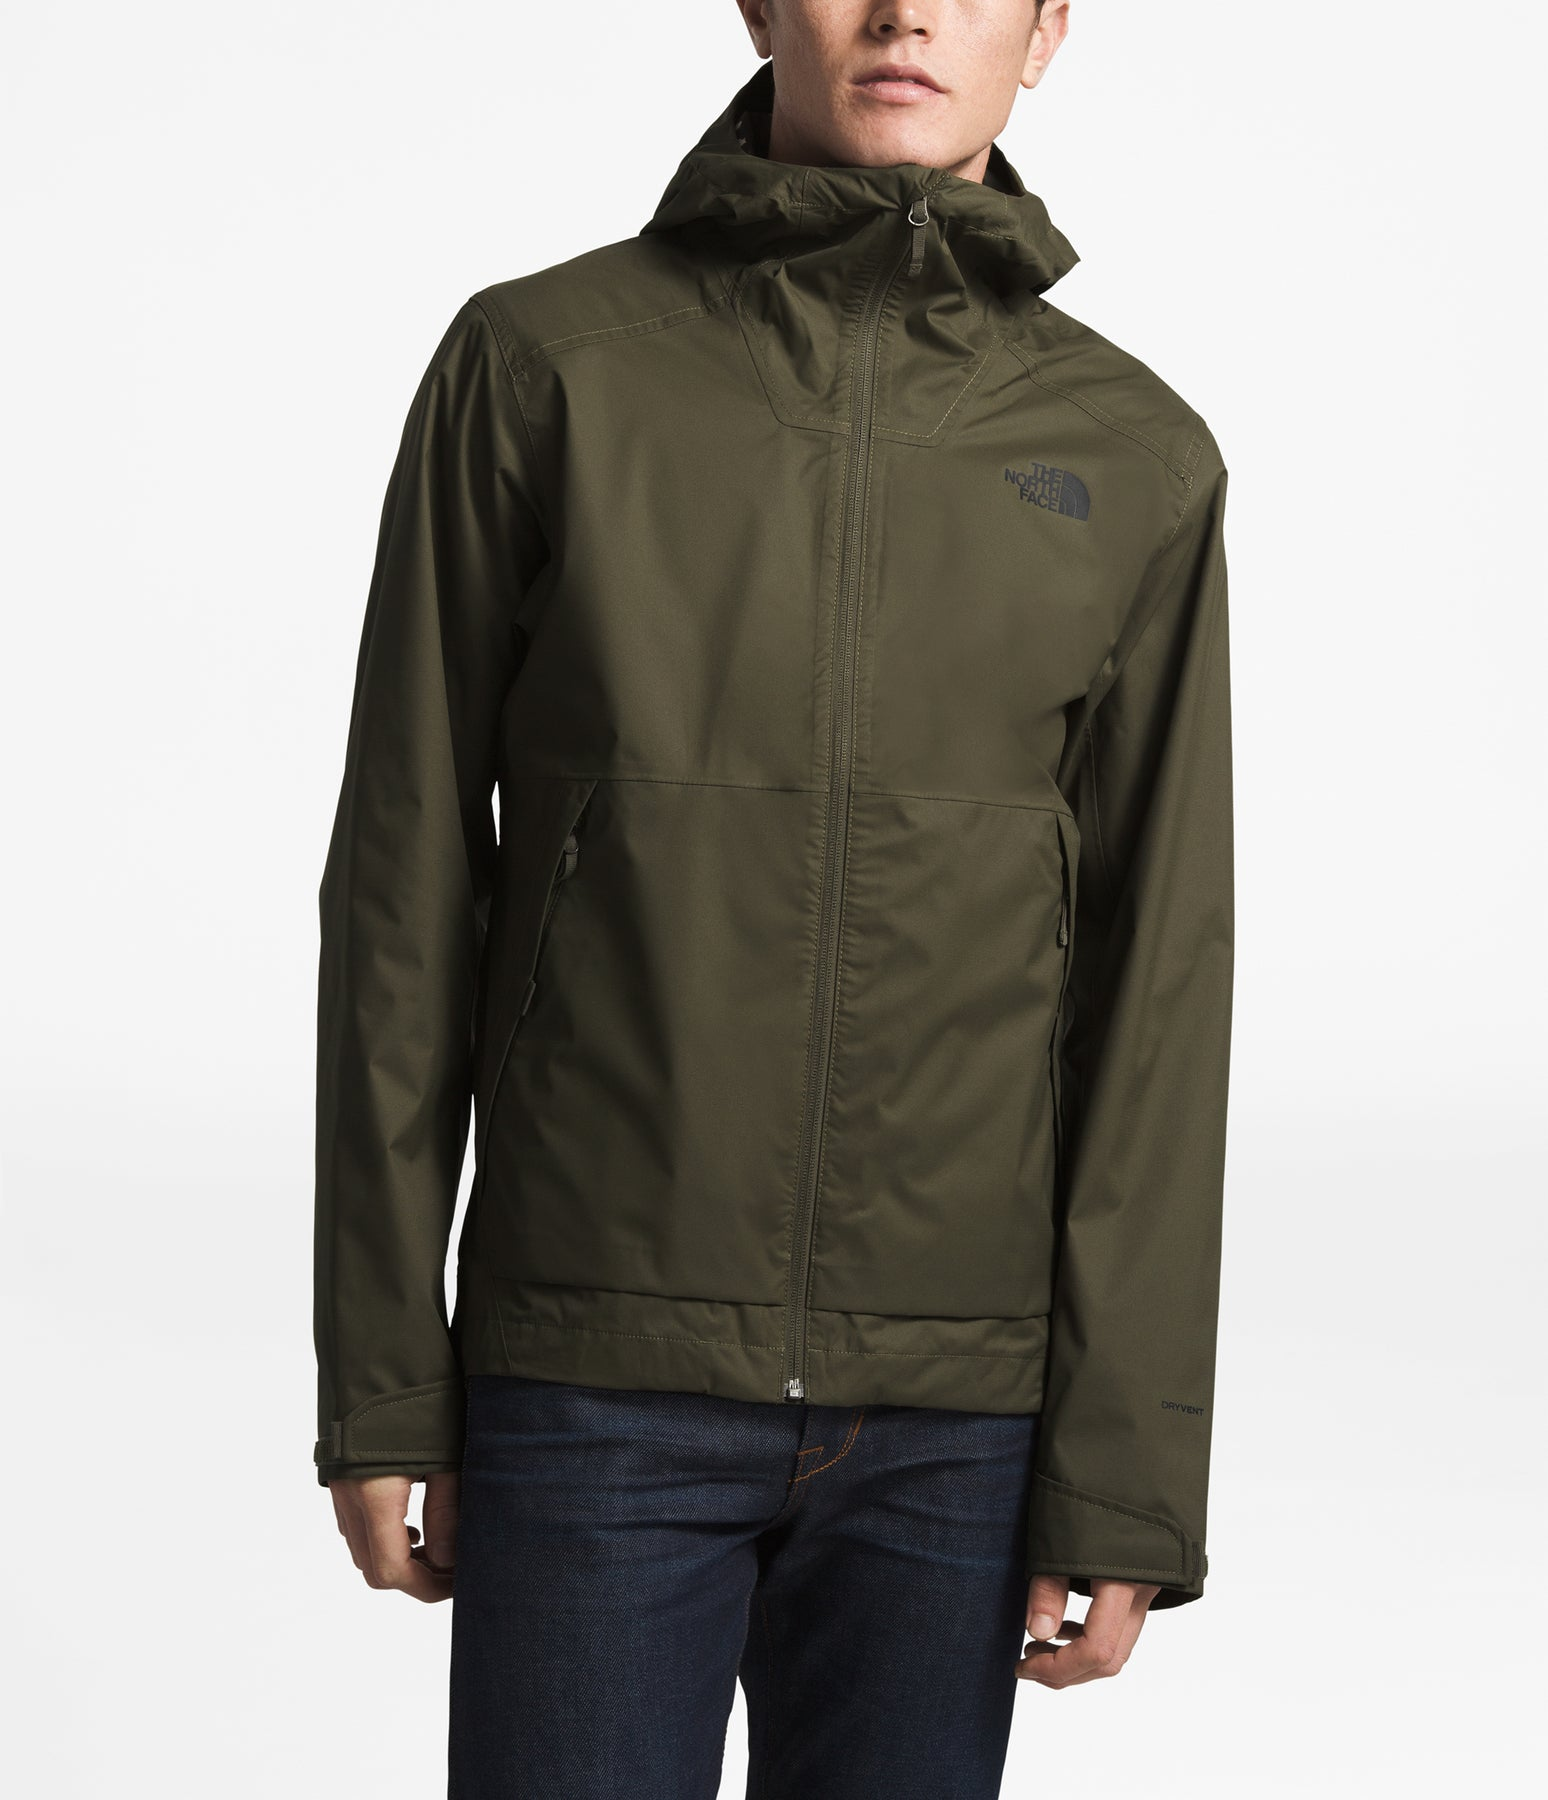 826dc720d The North Face Men's Millerton Waterproof Jacket - New Taupe Green